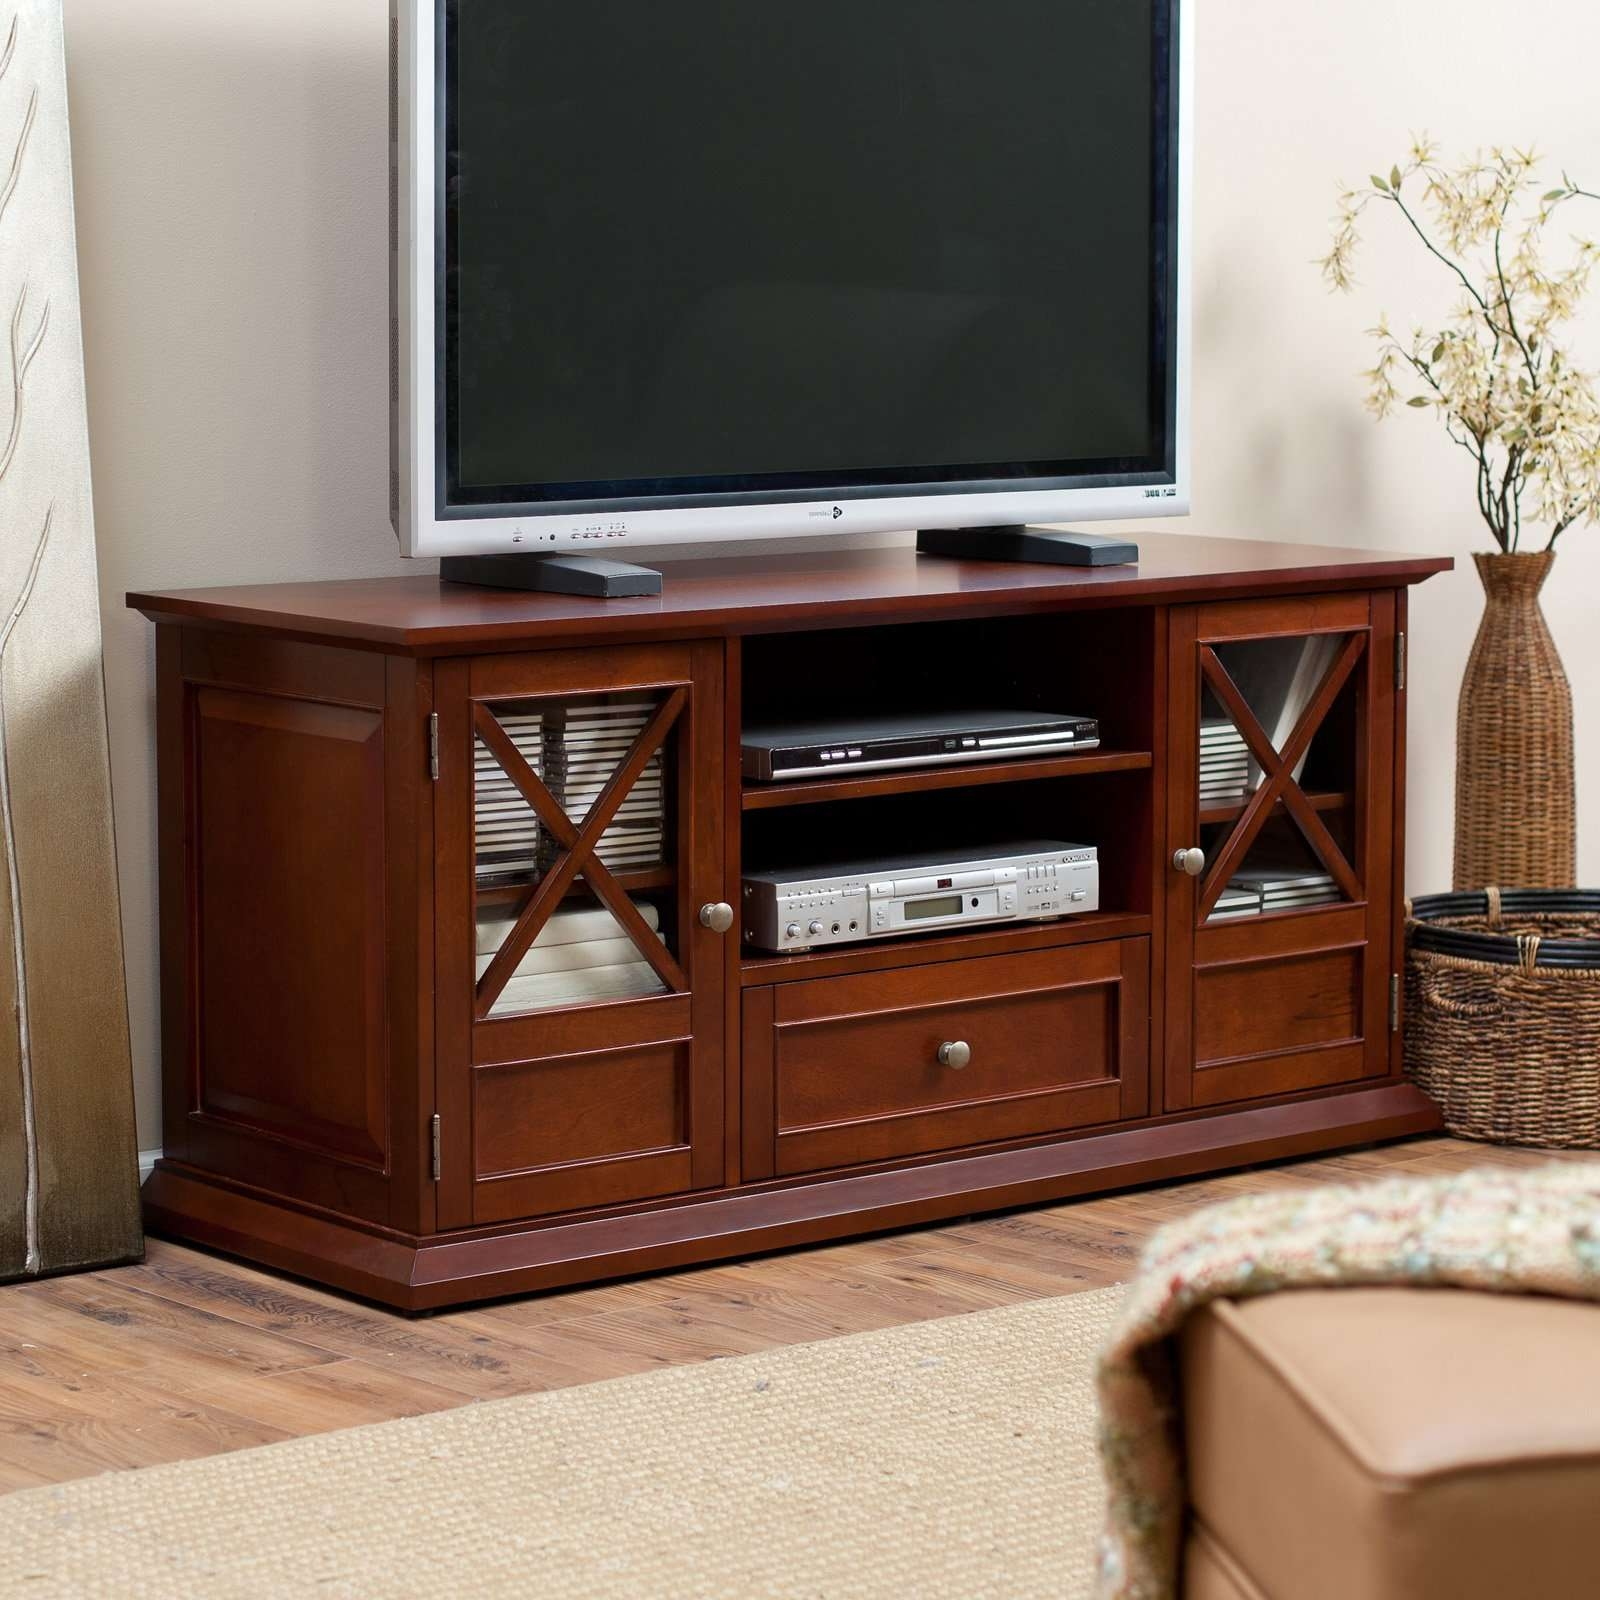 Belham Living Hampton Tv Stand Bookcase – Cherry | Hayneedle In Cherry Tv Stands (View 3 of 15)